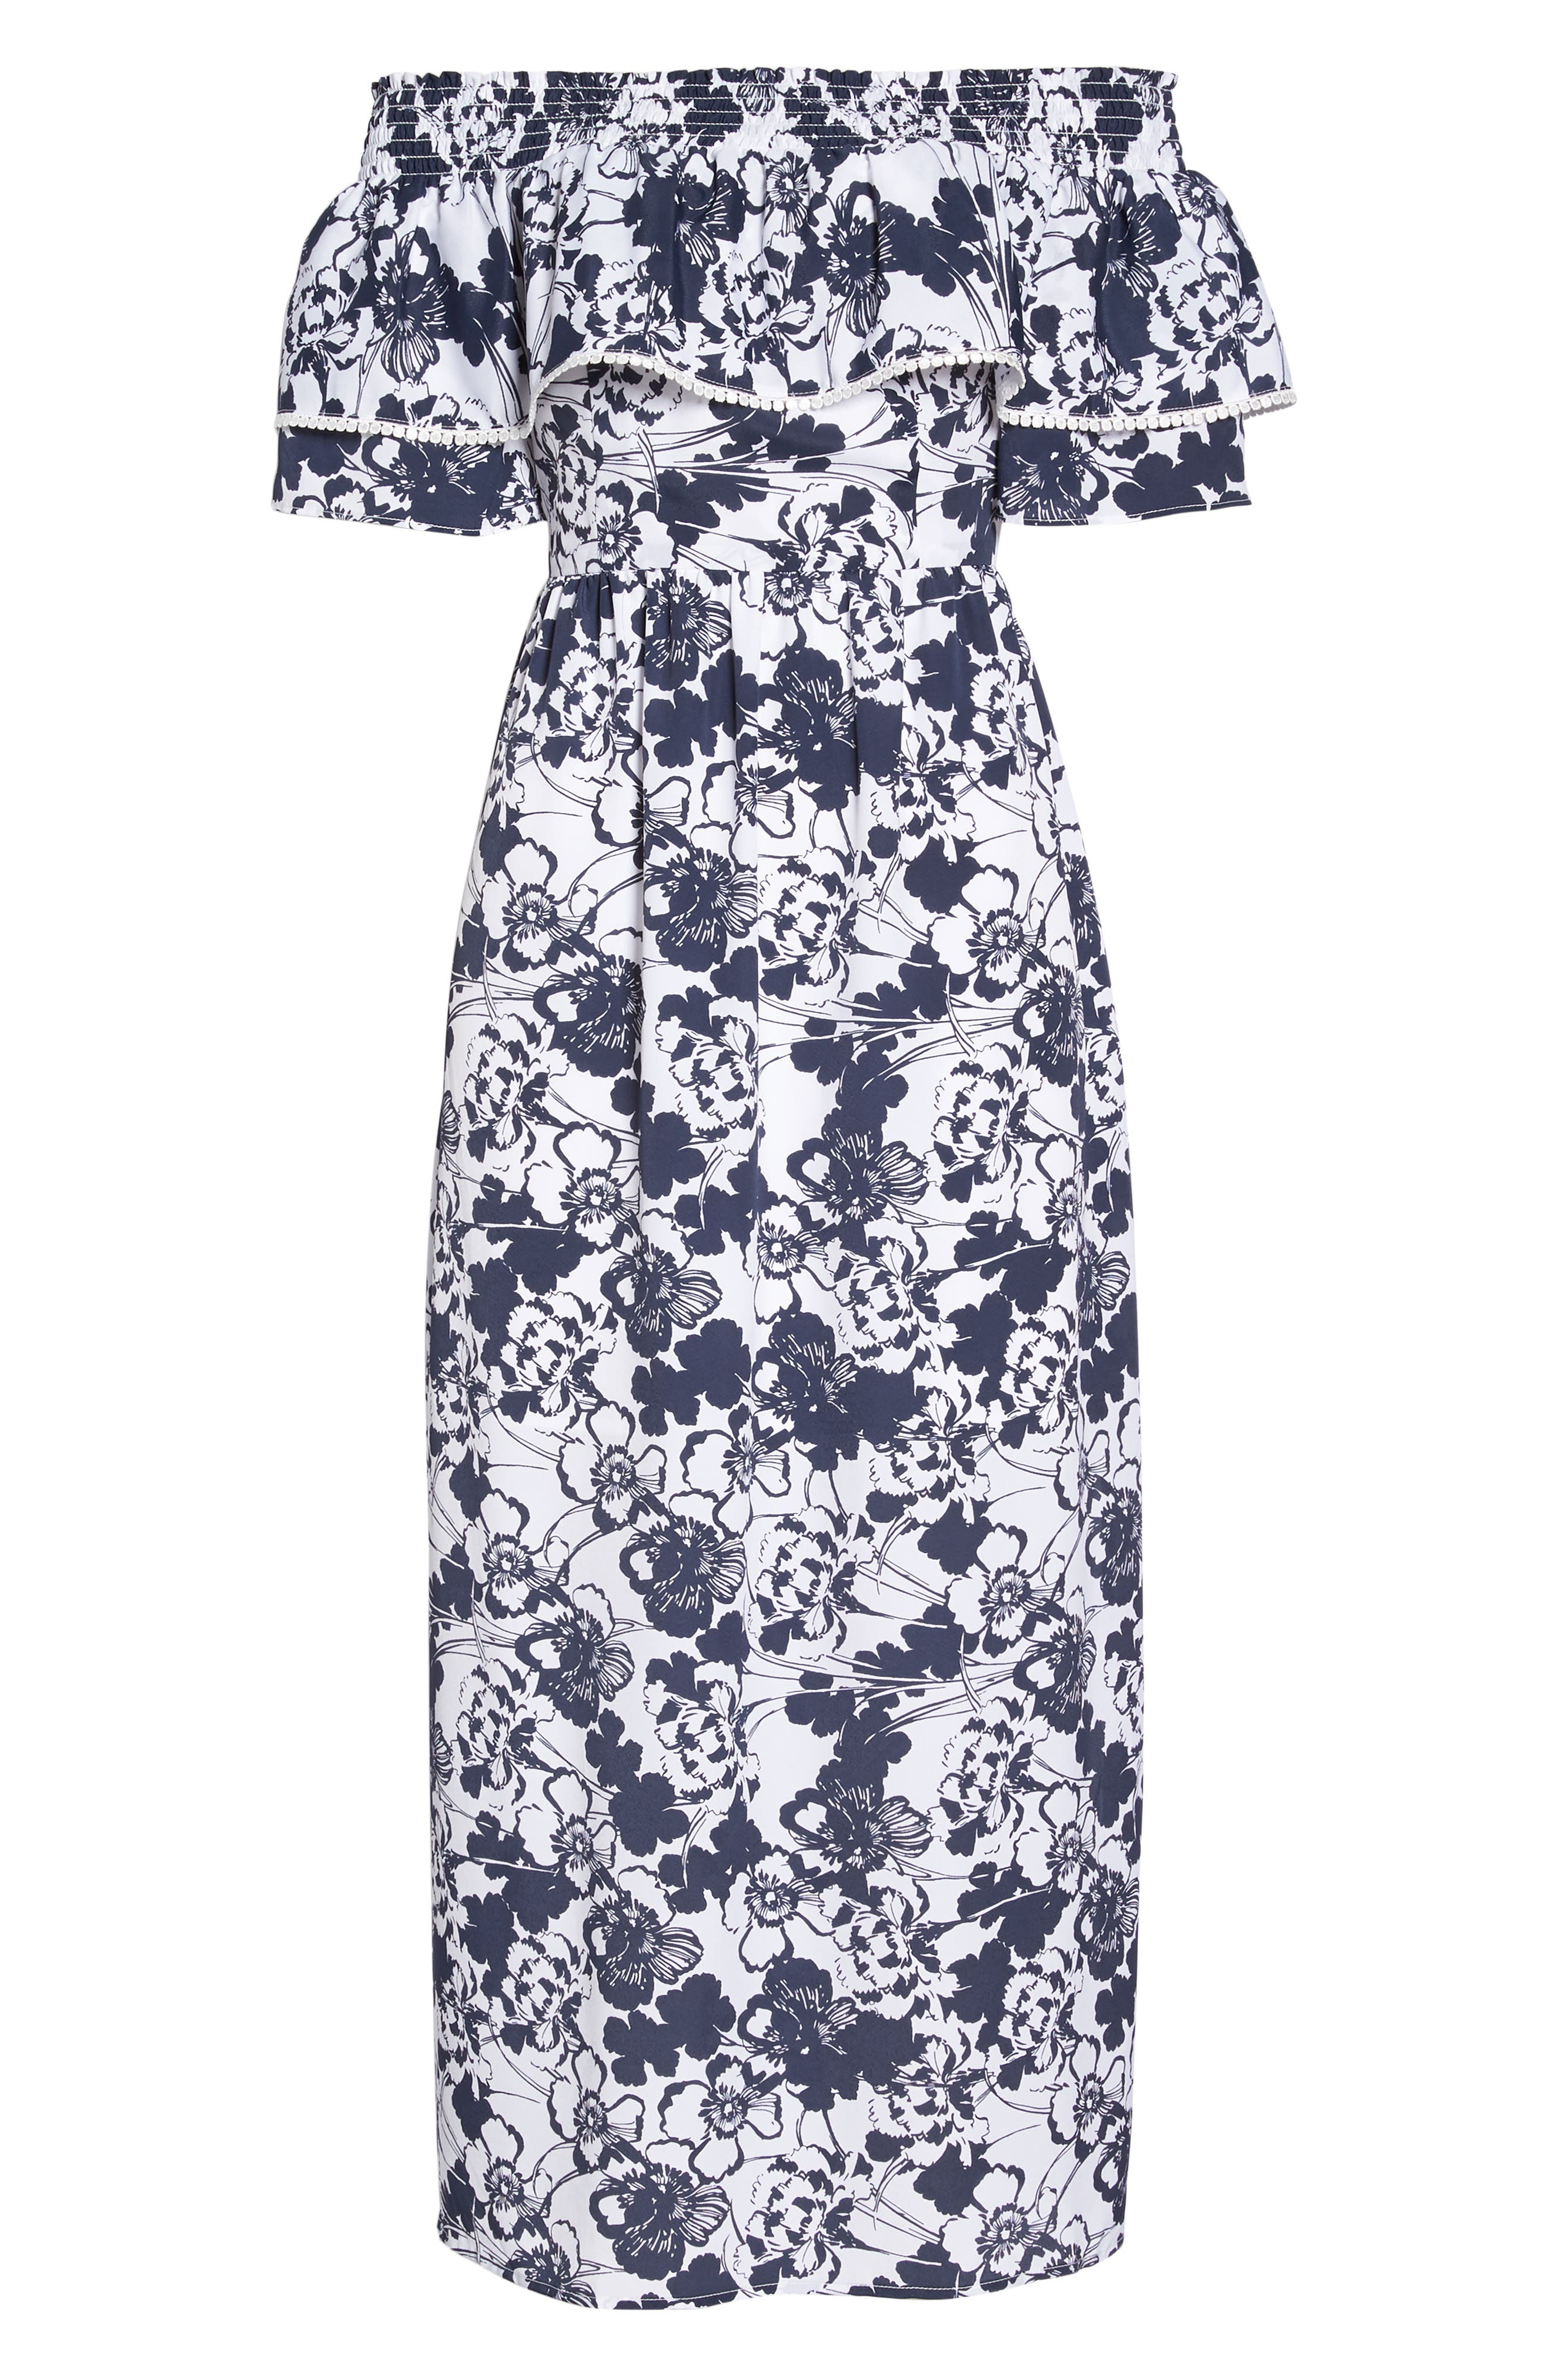 Off the Shoulder Ruffle Maxi Dress,                             Alternate thumbnail 8, color,                             Navy Ivory Floral Print